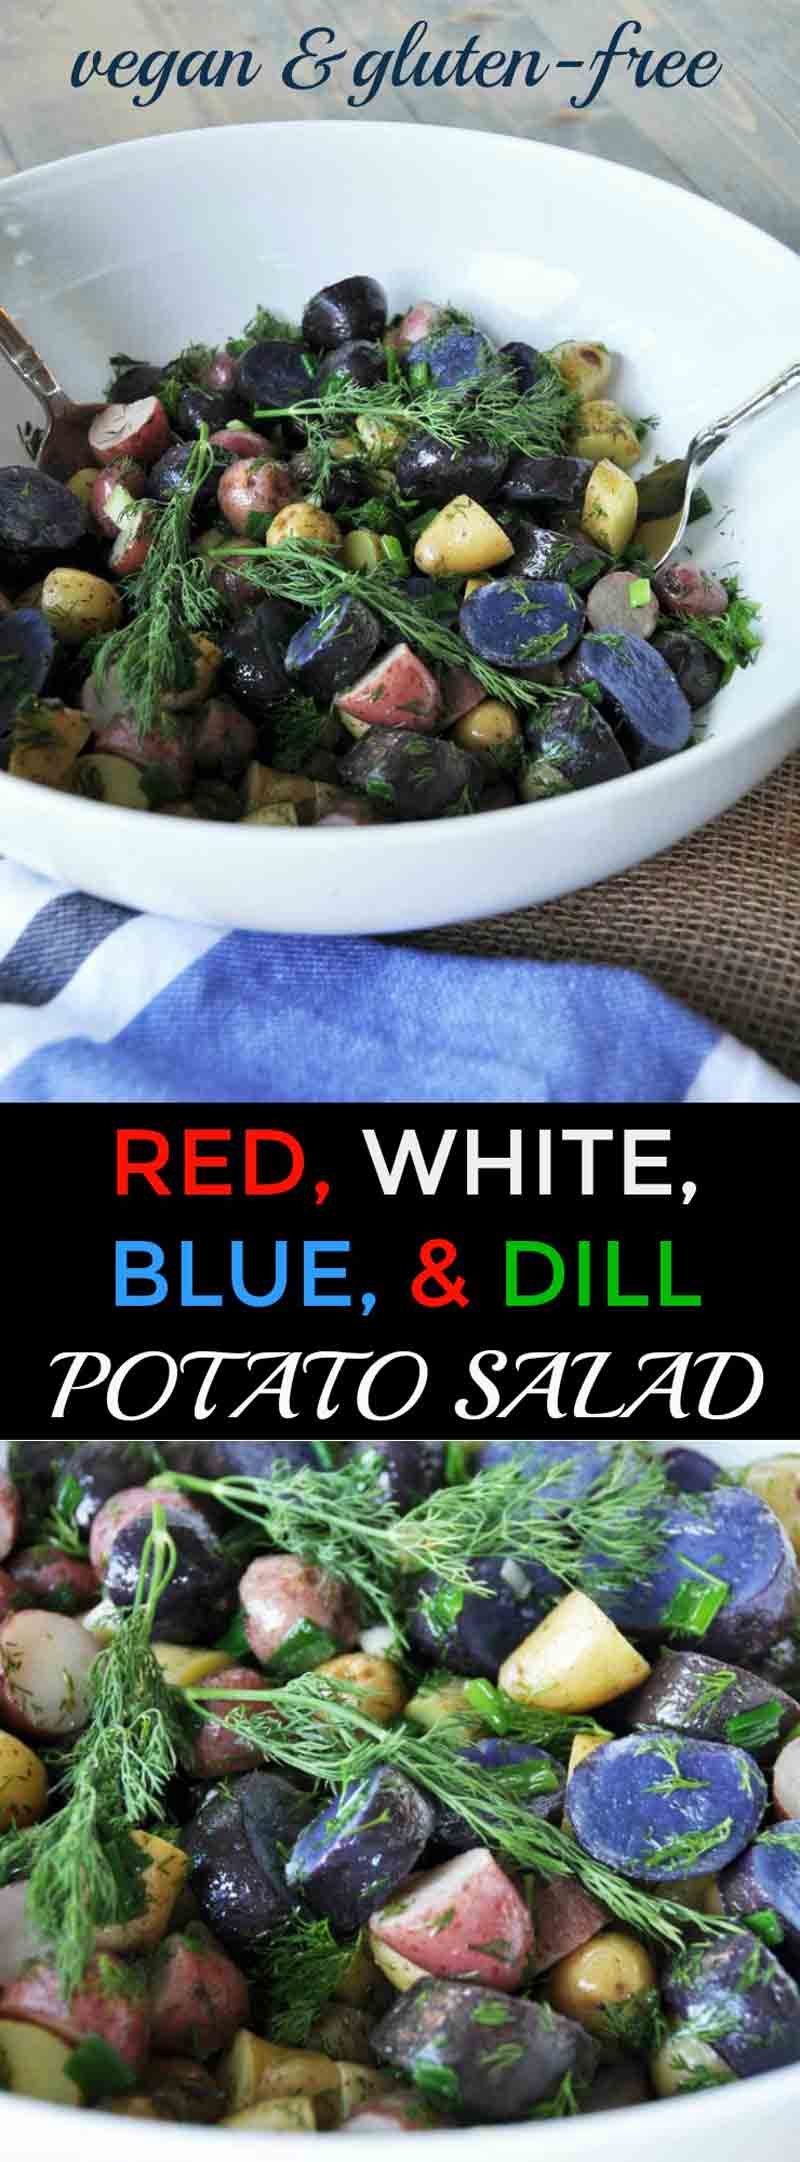 A pretty, festive, and delicious tri-colored potato salad with dill dressing recipe! Perfect for tailgating, holidays, or the election! www.veganosity.com